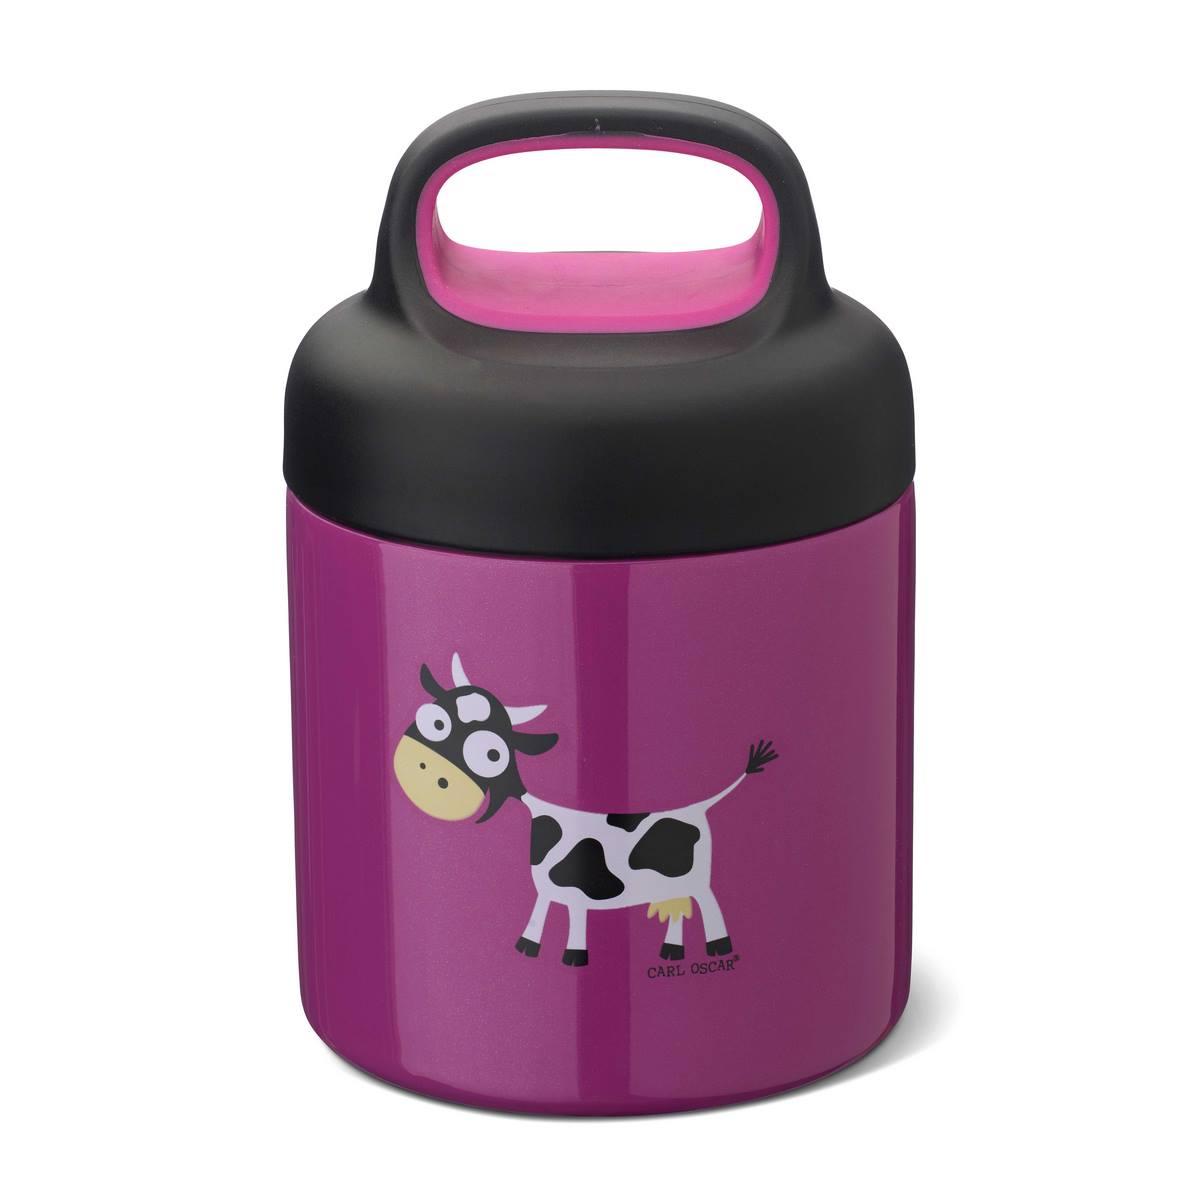 Термос для еды LunchJar™ Cow 0.3л фиолетовый